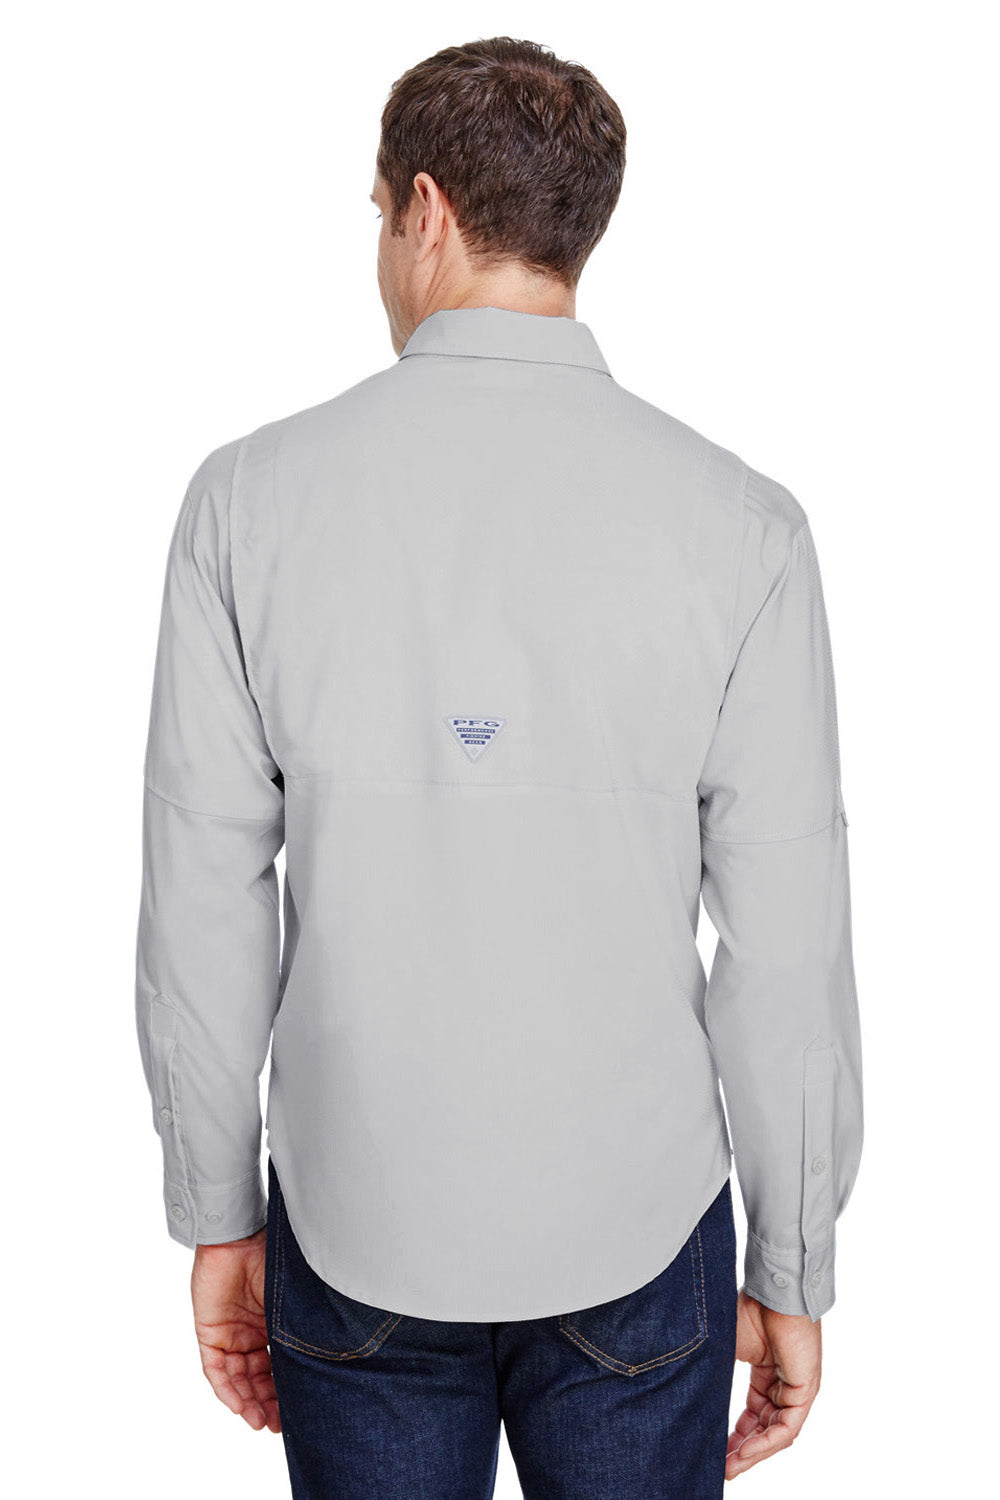 Columbia 7253 Tamiami II Moisture Wicking Long Sleeve Button Down Shirt w/ Double Pockets Cool Grey Back